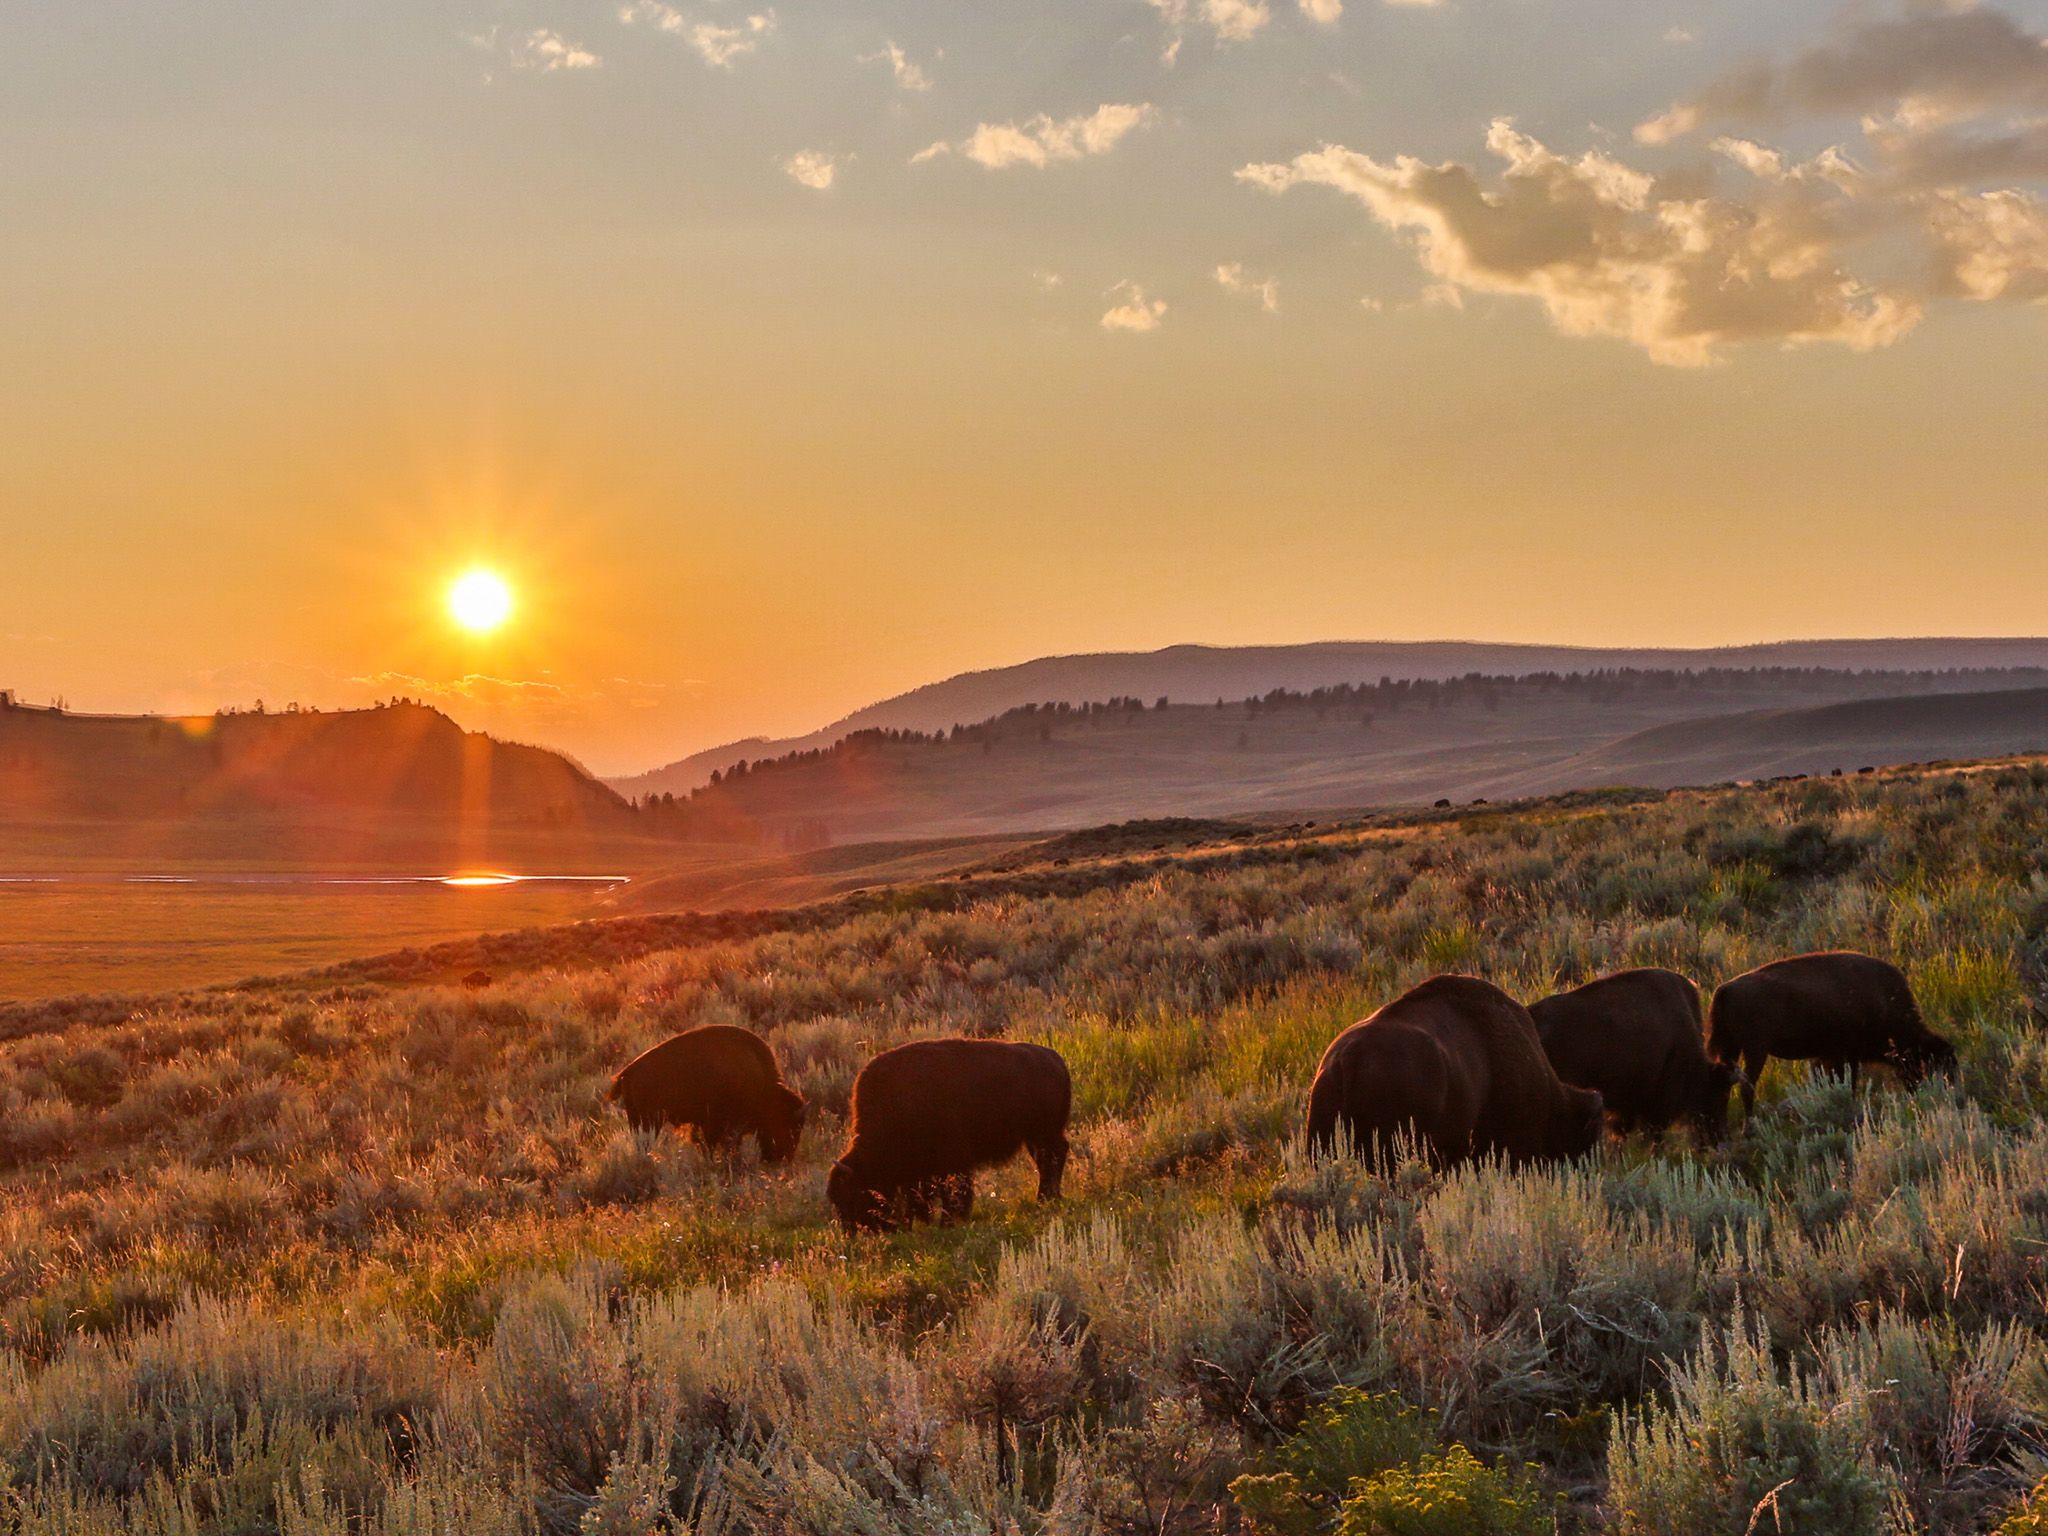 Yellowstone, Wyo.: Bison herd in summer evening light during the bison rut. This image is from... [Photo of the day - April 2015]